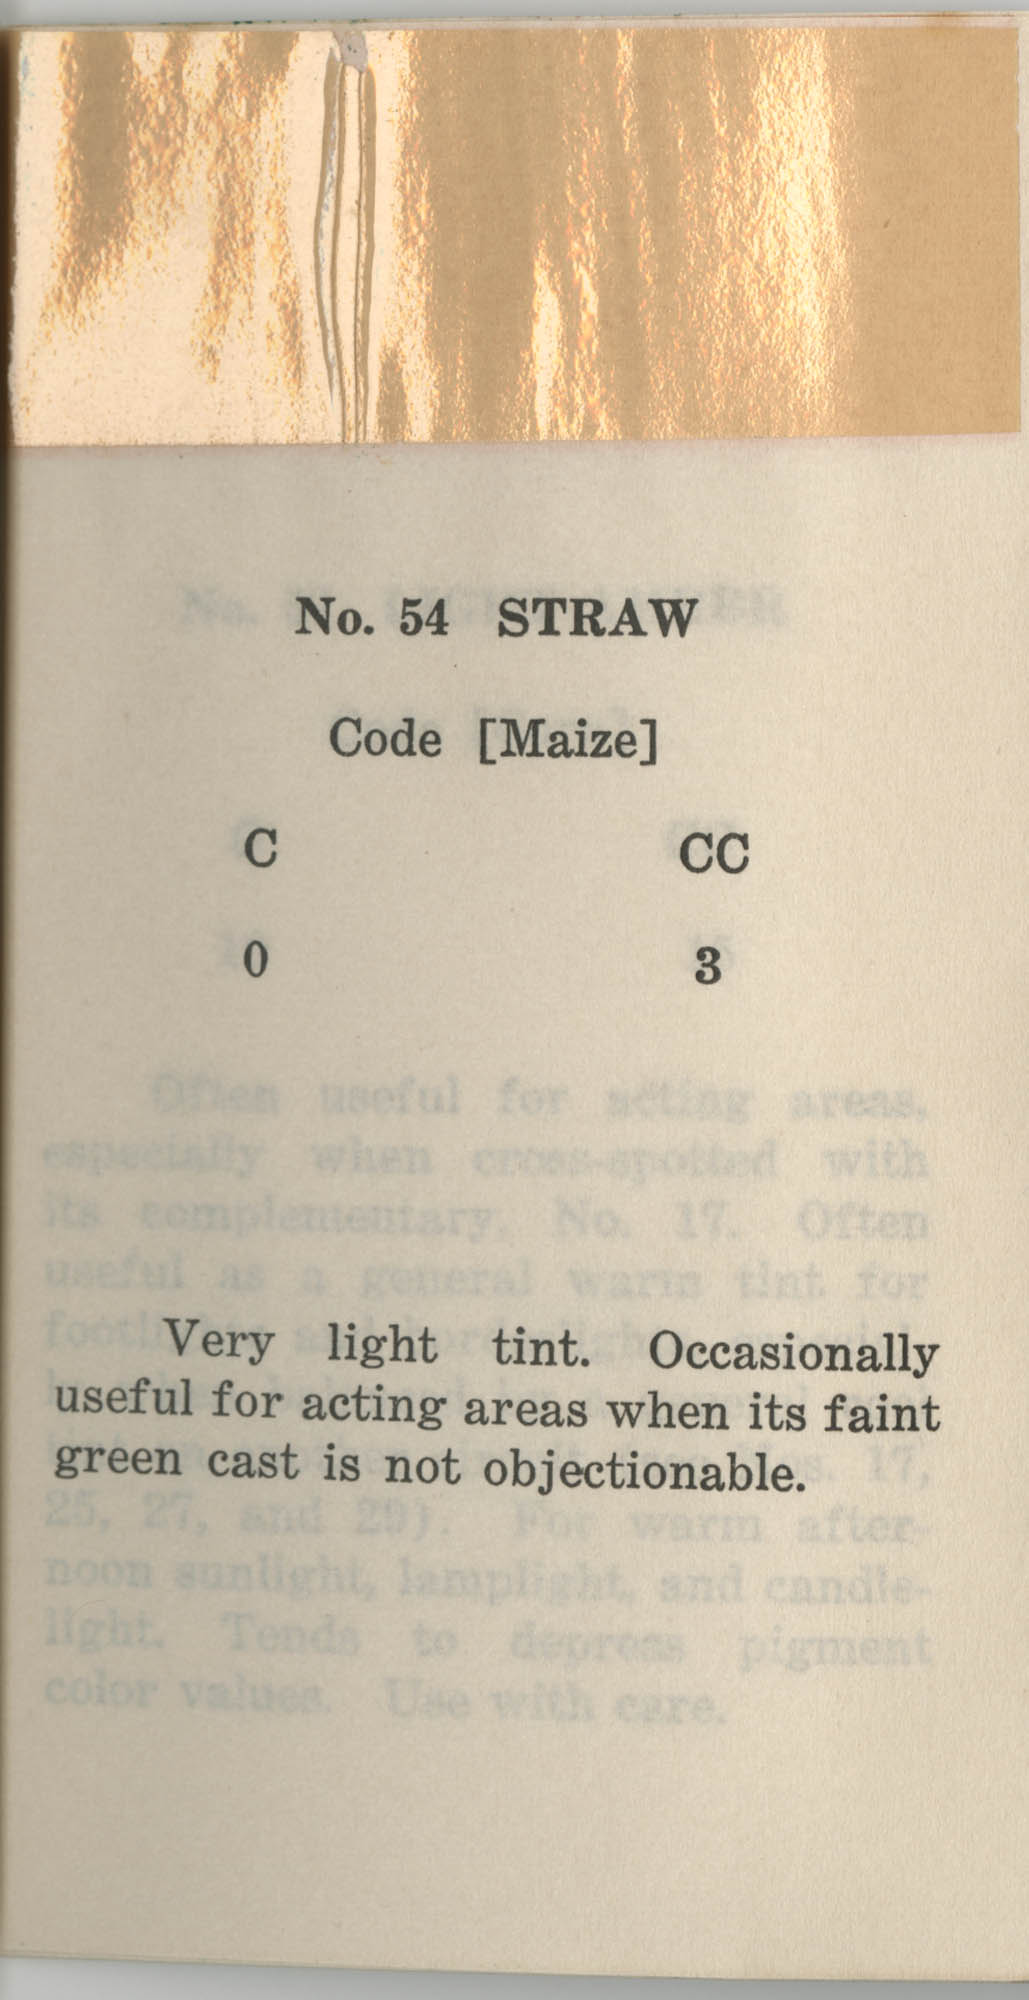 Colored Gelatine for the Theatre School and Community Playhouse, Page 22